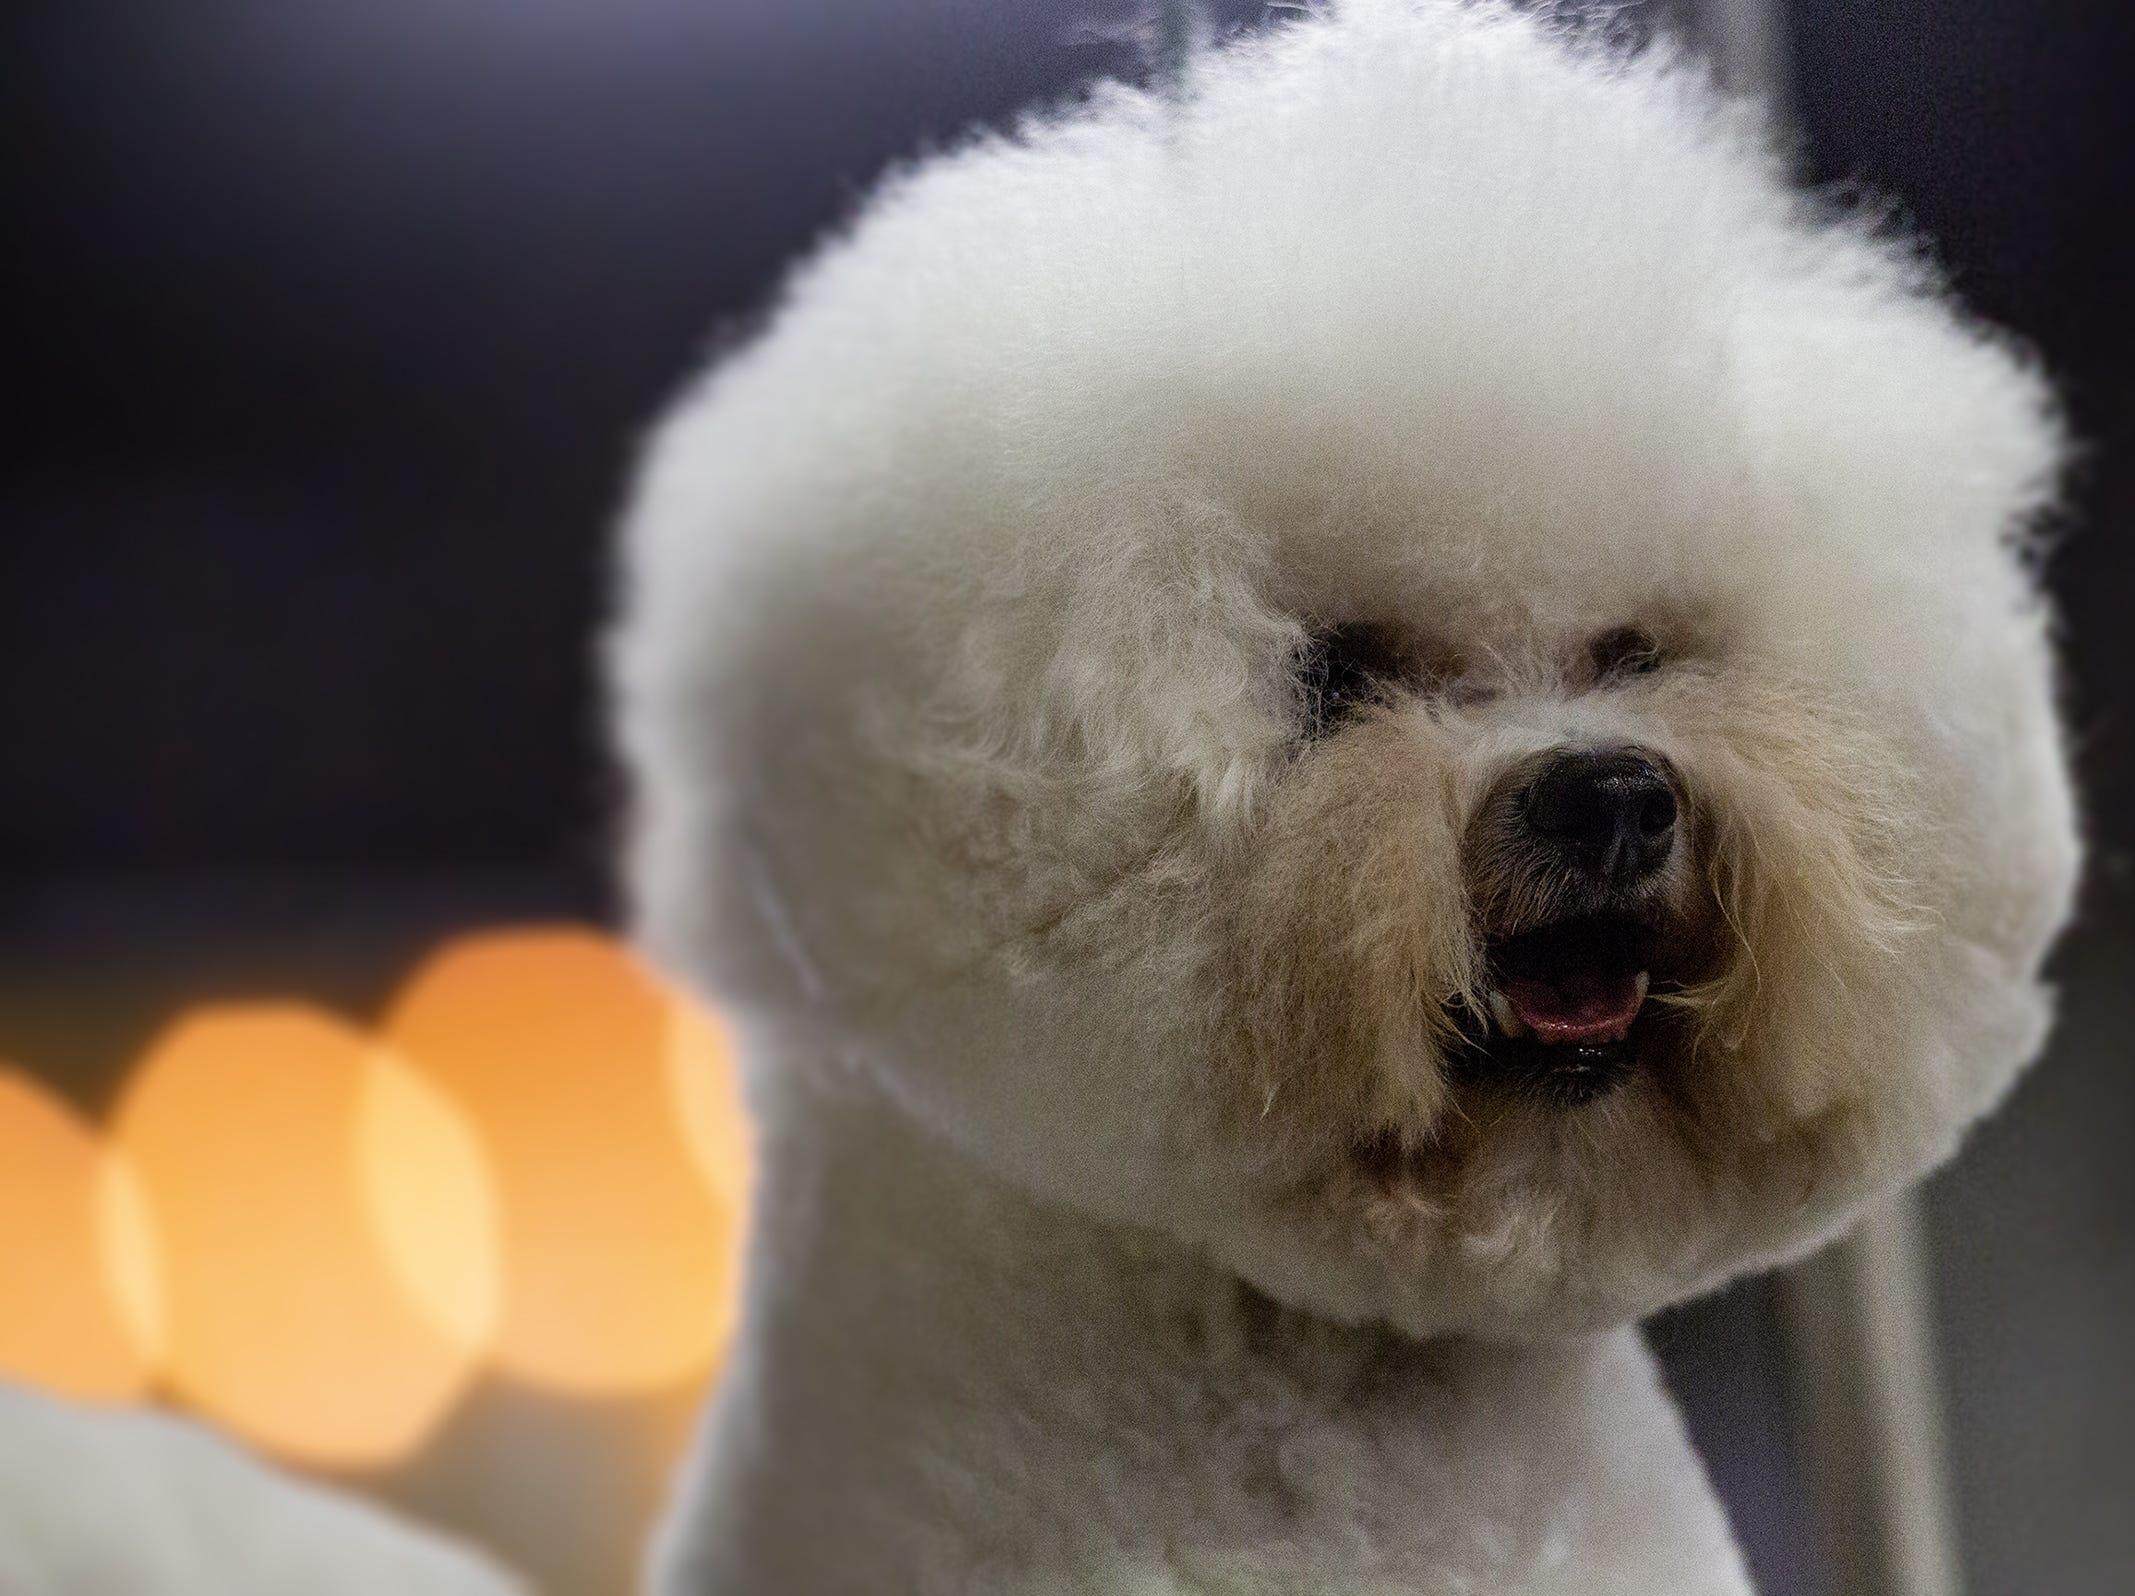 Zach, a Bishon Frise, waits for his turn in the ring at the 2019 Kentuckiana Cluster of Dog Shows at the Kentucky Exposition Center. March 14, 2019.